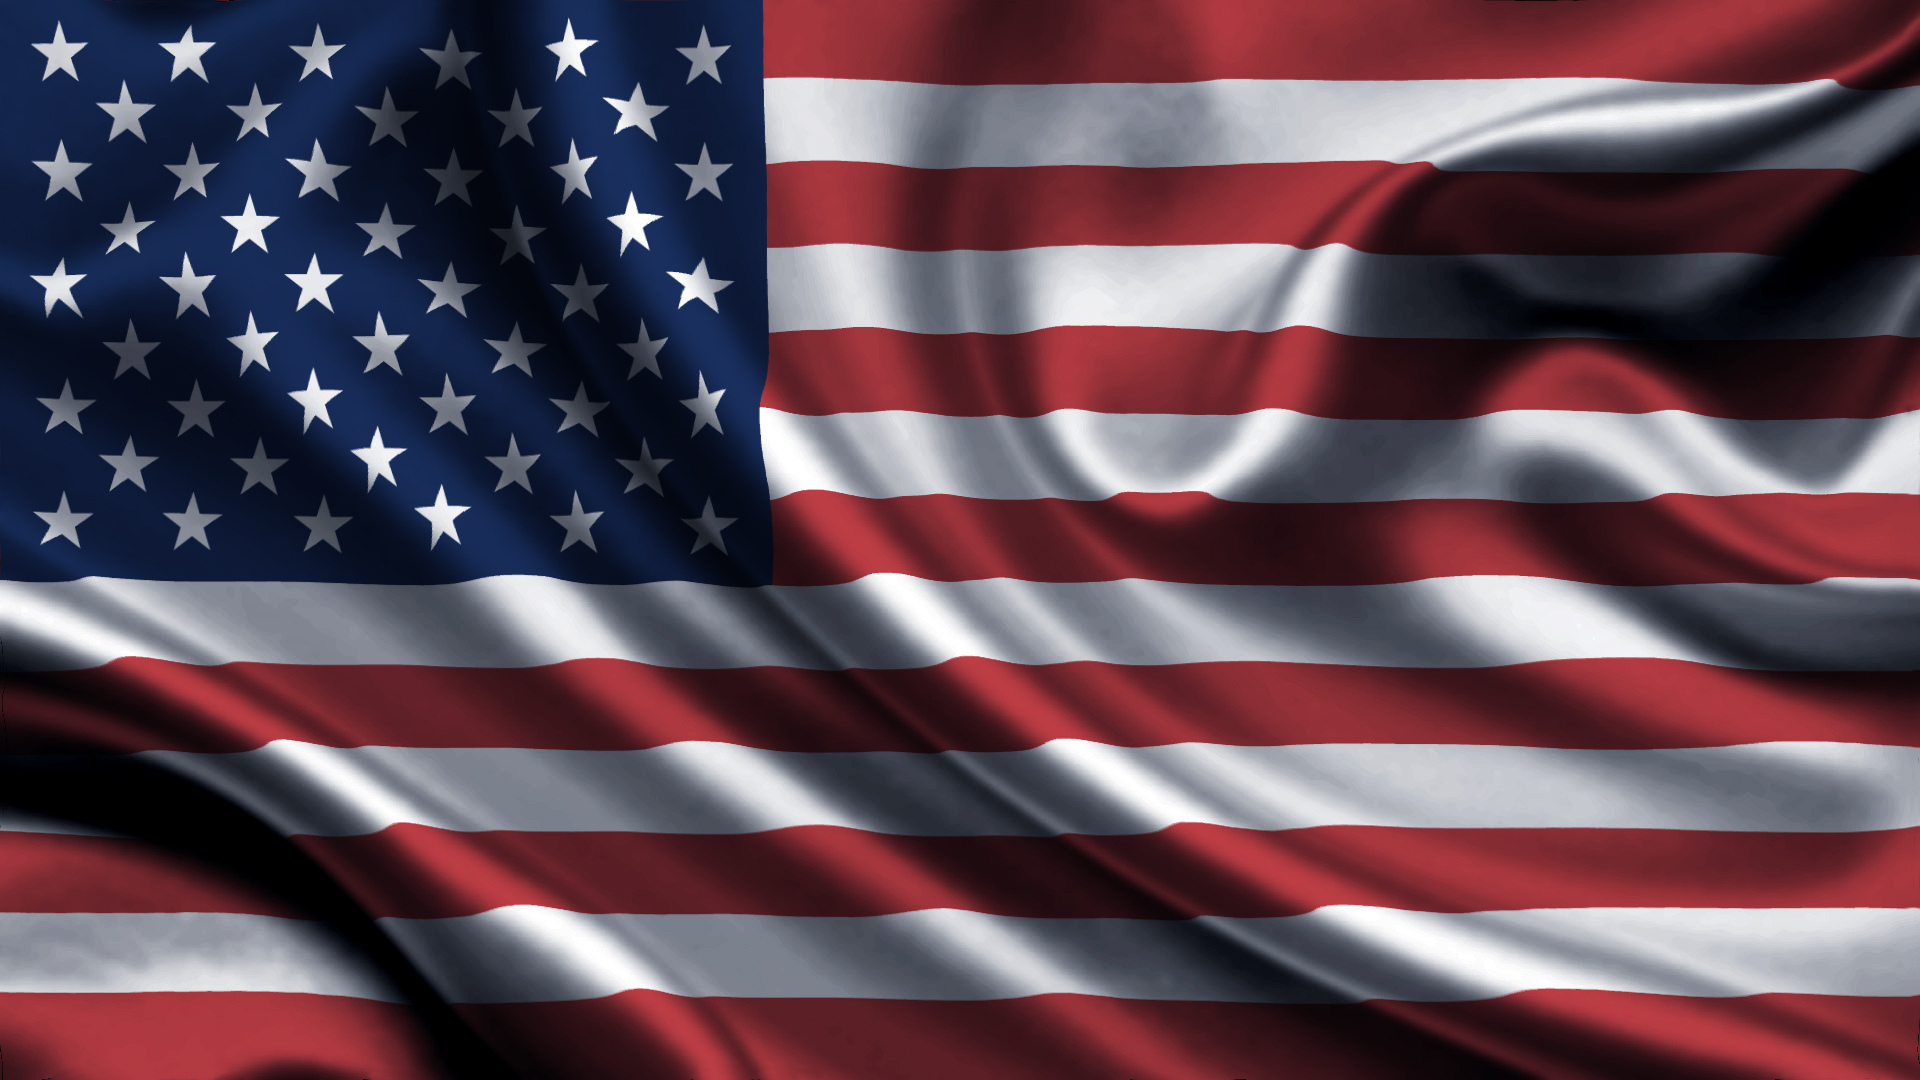 united states flag wallpaper 1920x1080 47362 wallpaperup